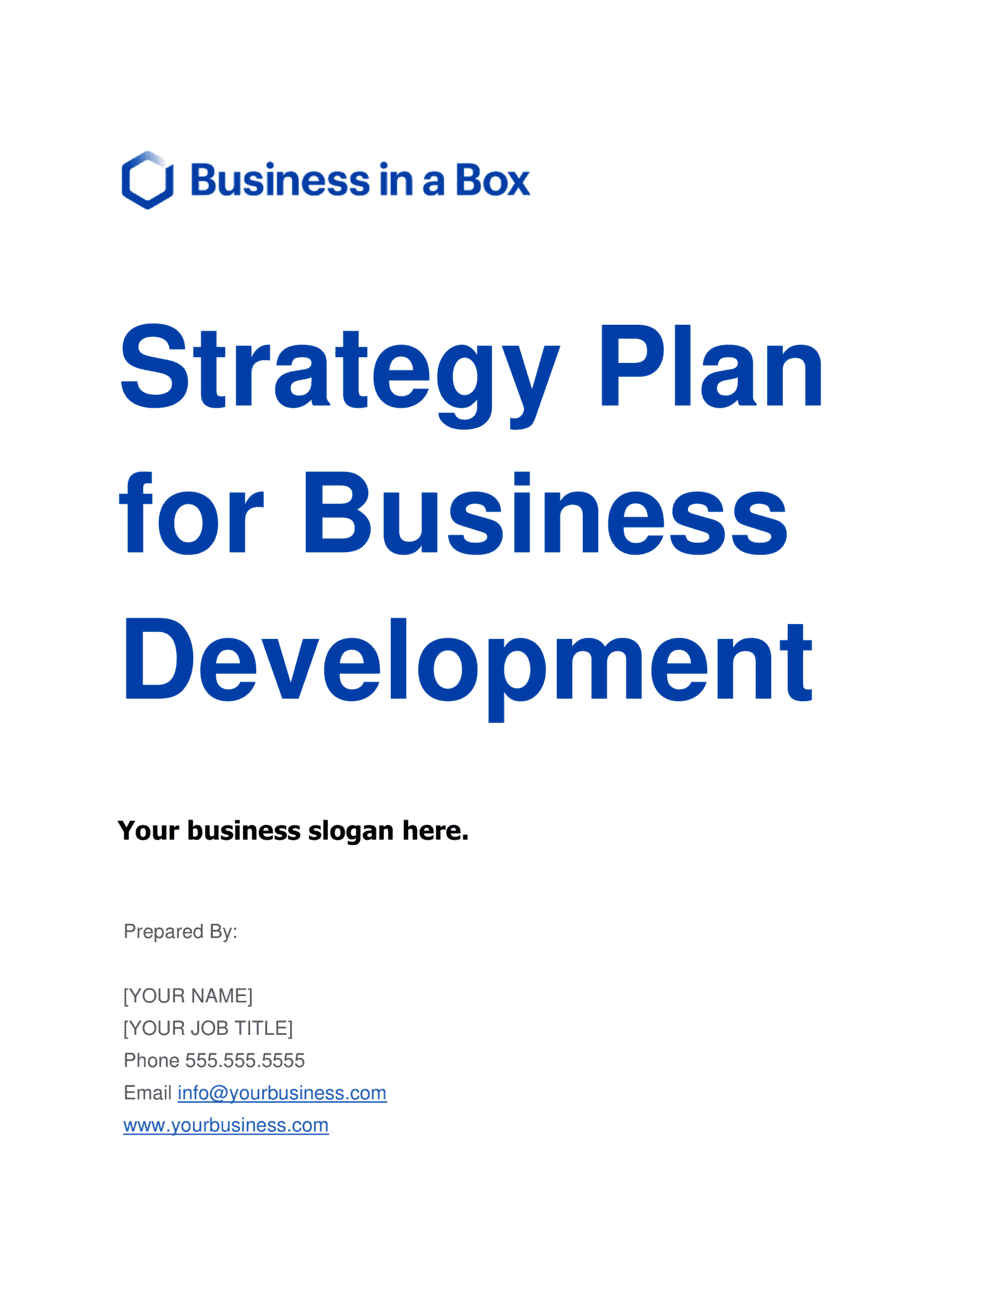 Business-in-a-Box's Strategy Plan For Business Development Template